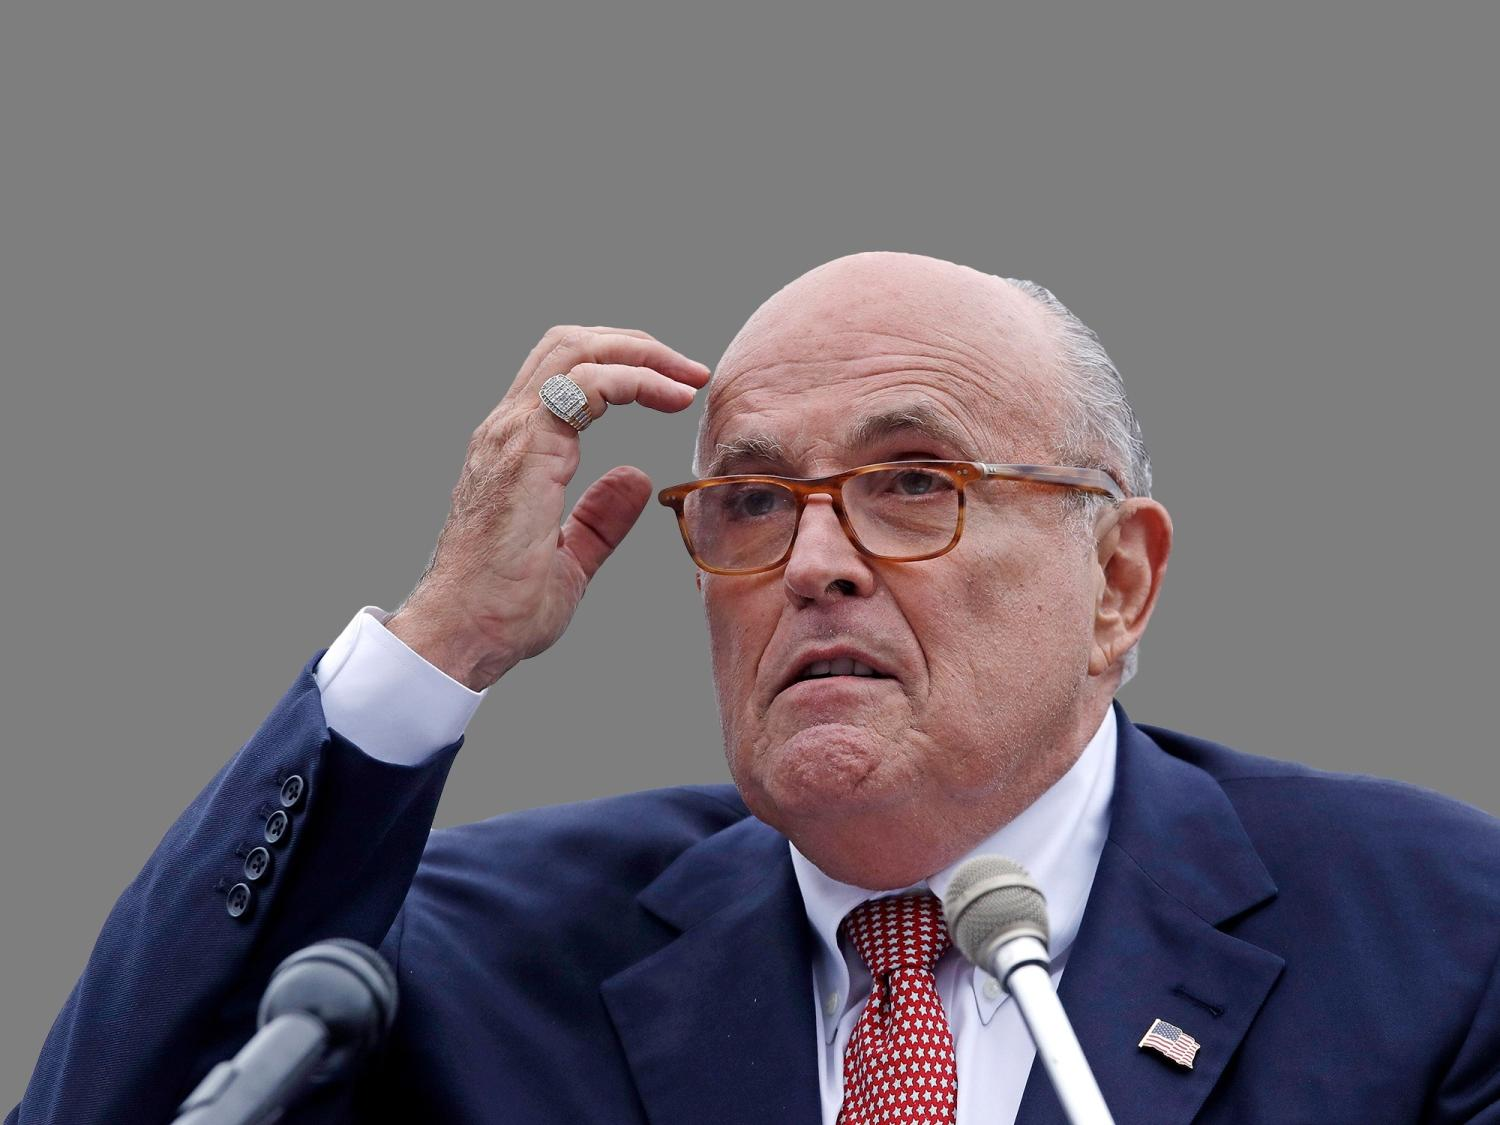 Giuliani being probed over link to gas firm in Ukraine